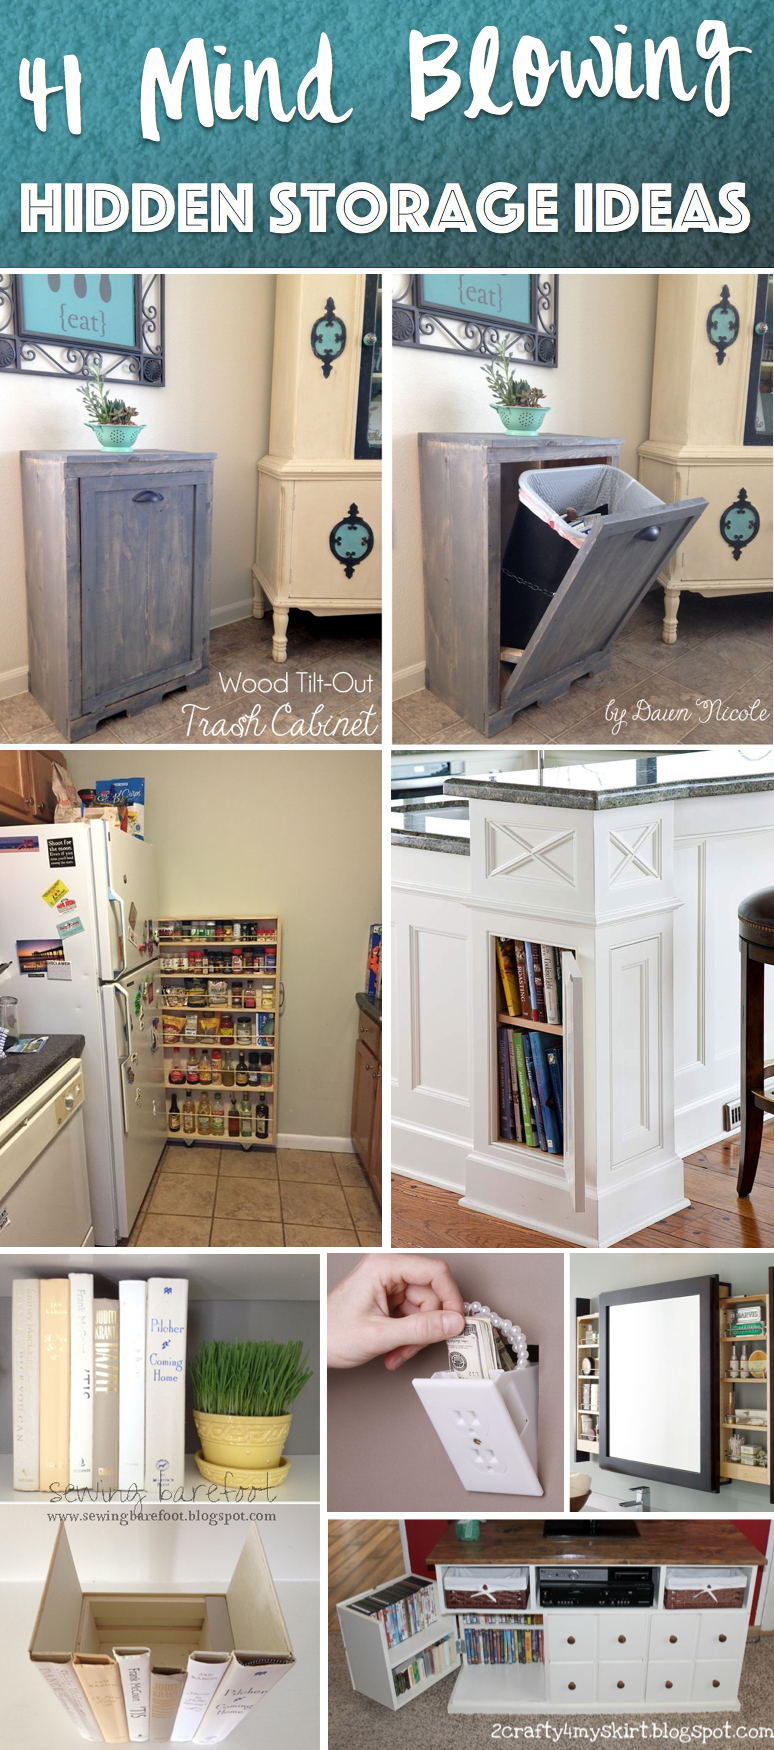 Cupboard Storage Ideas 41 Mind Blowing Hidden Storage Ideas Making A Clever Use Of Your